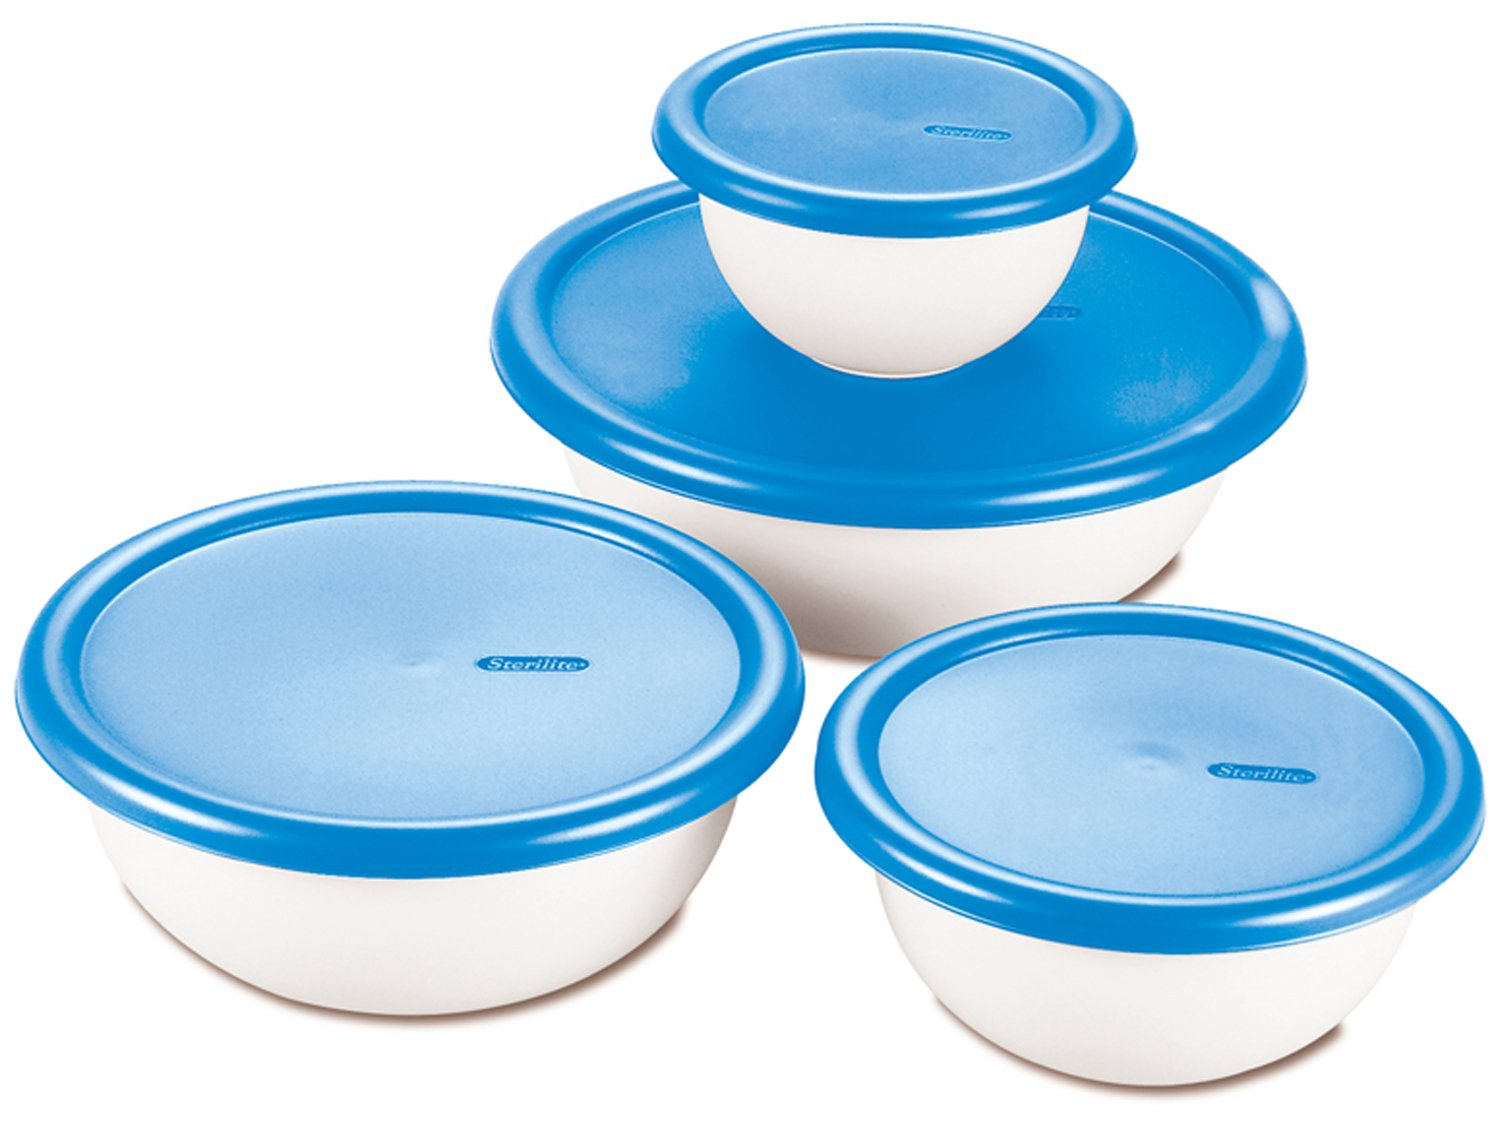 STERILITE 07479406 8 Piece Covered Bowl Set, White & Blue, 1-Pack